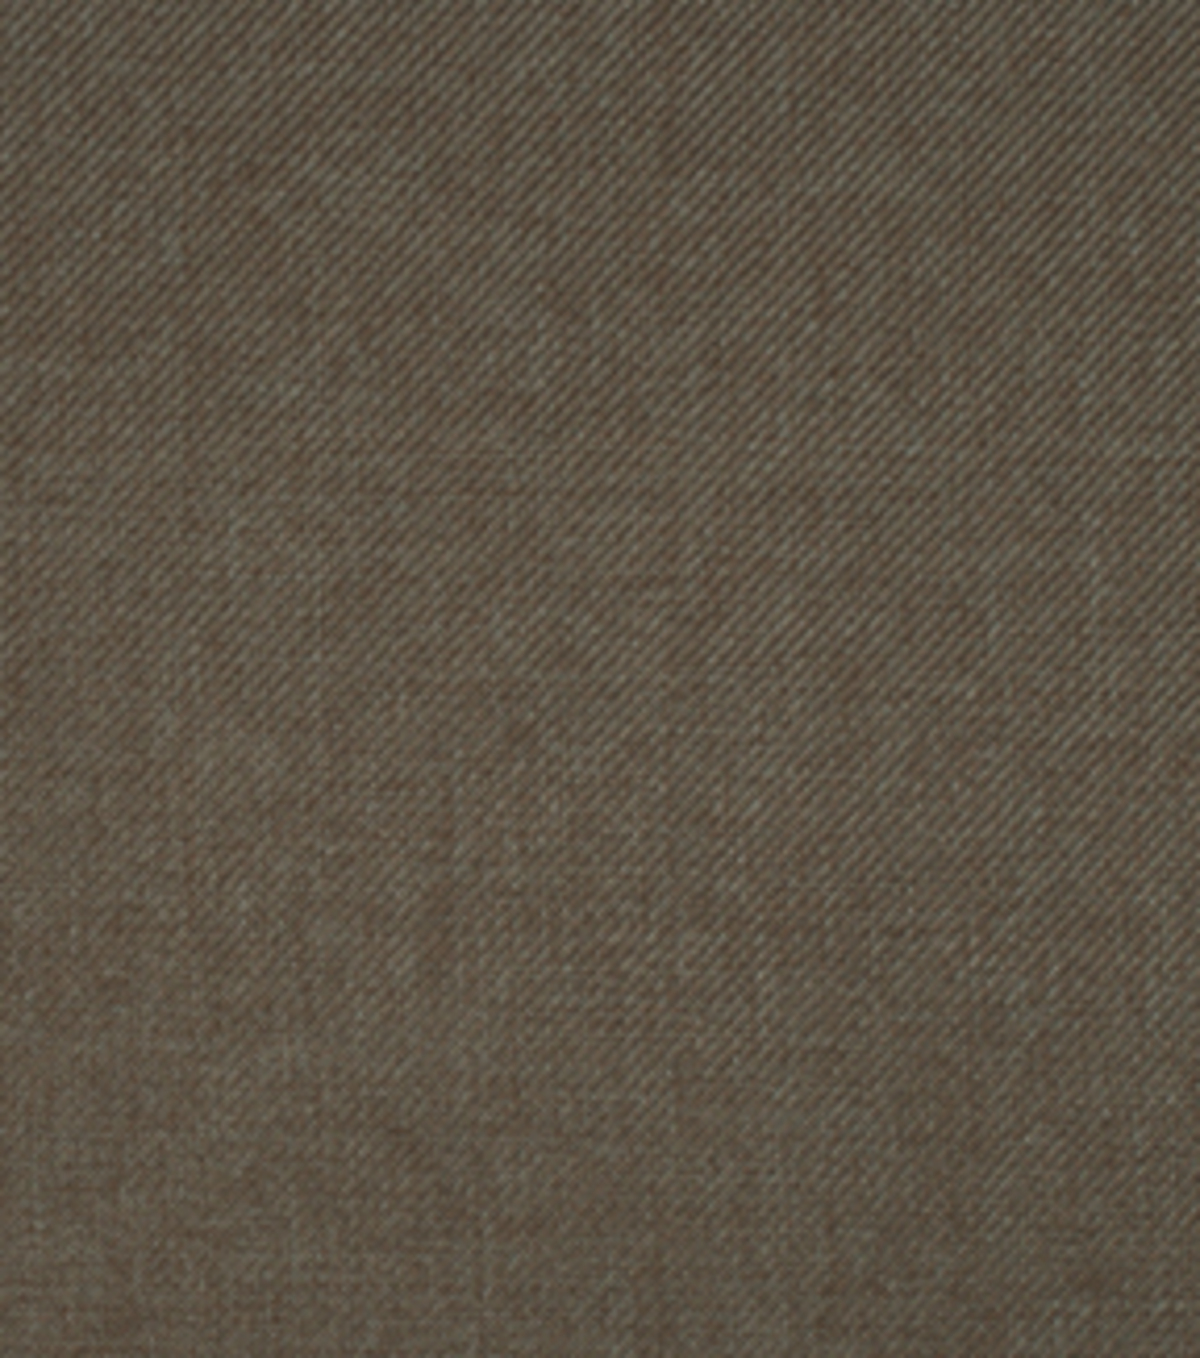 Home Decor 8\u0022x8\u0022 Fabric Swatch-Eaton Square Heston Slate